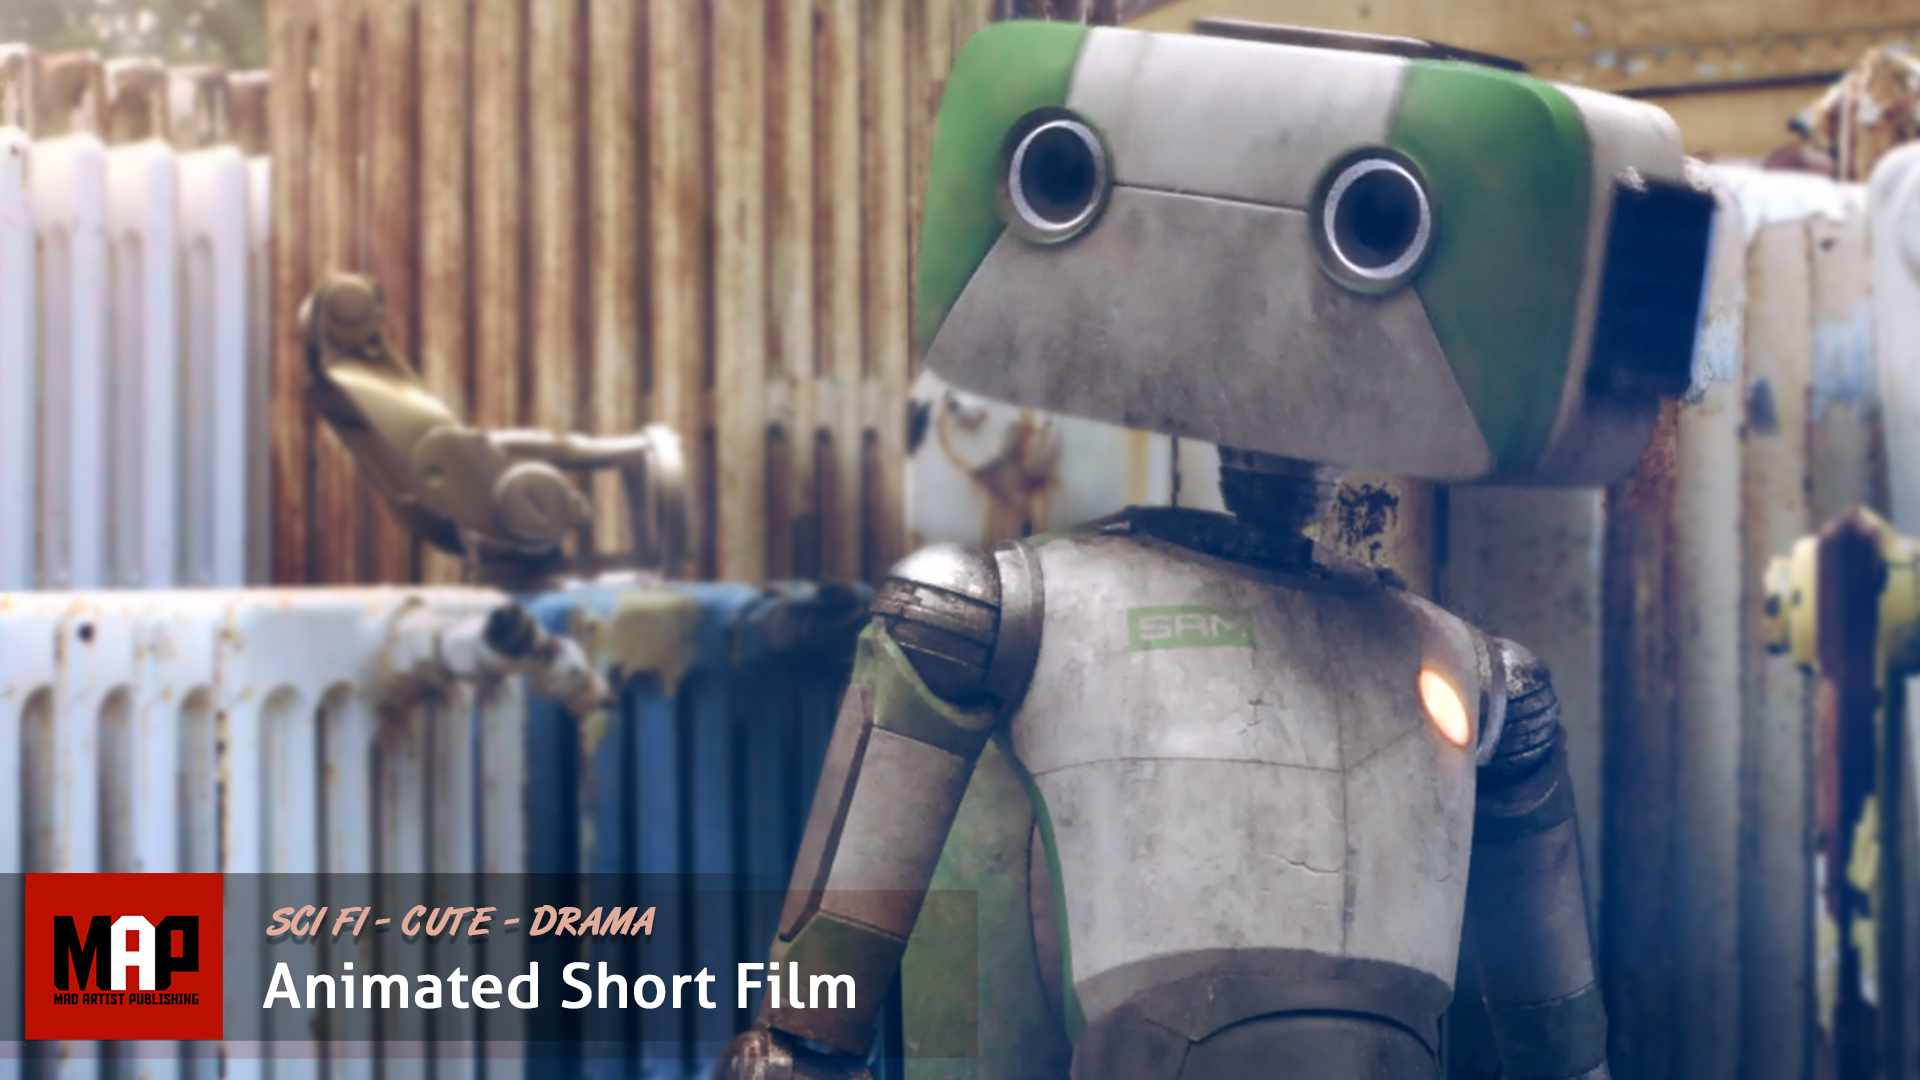 Cute VFX & CGI Animated Short Film ** SACCAGE ** AI Robot Animation by ISART Digital